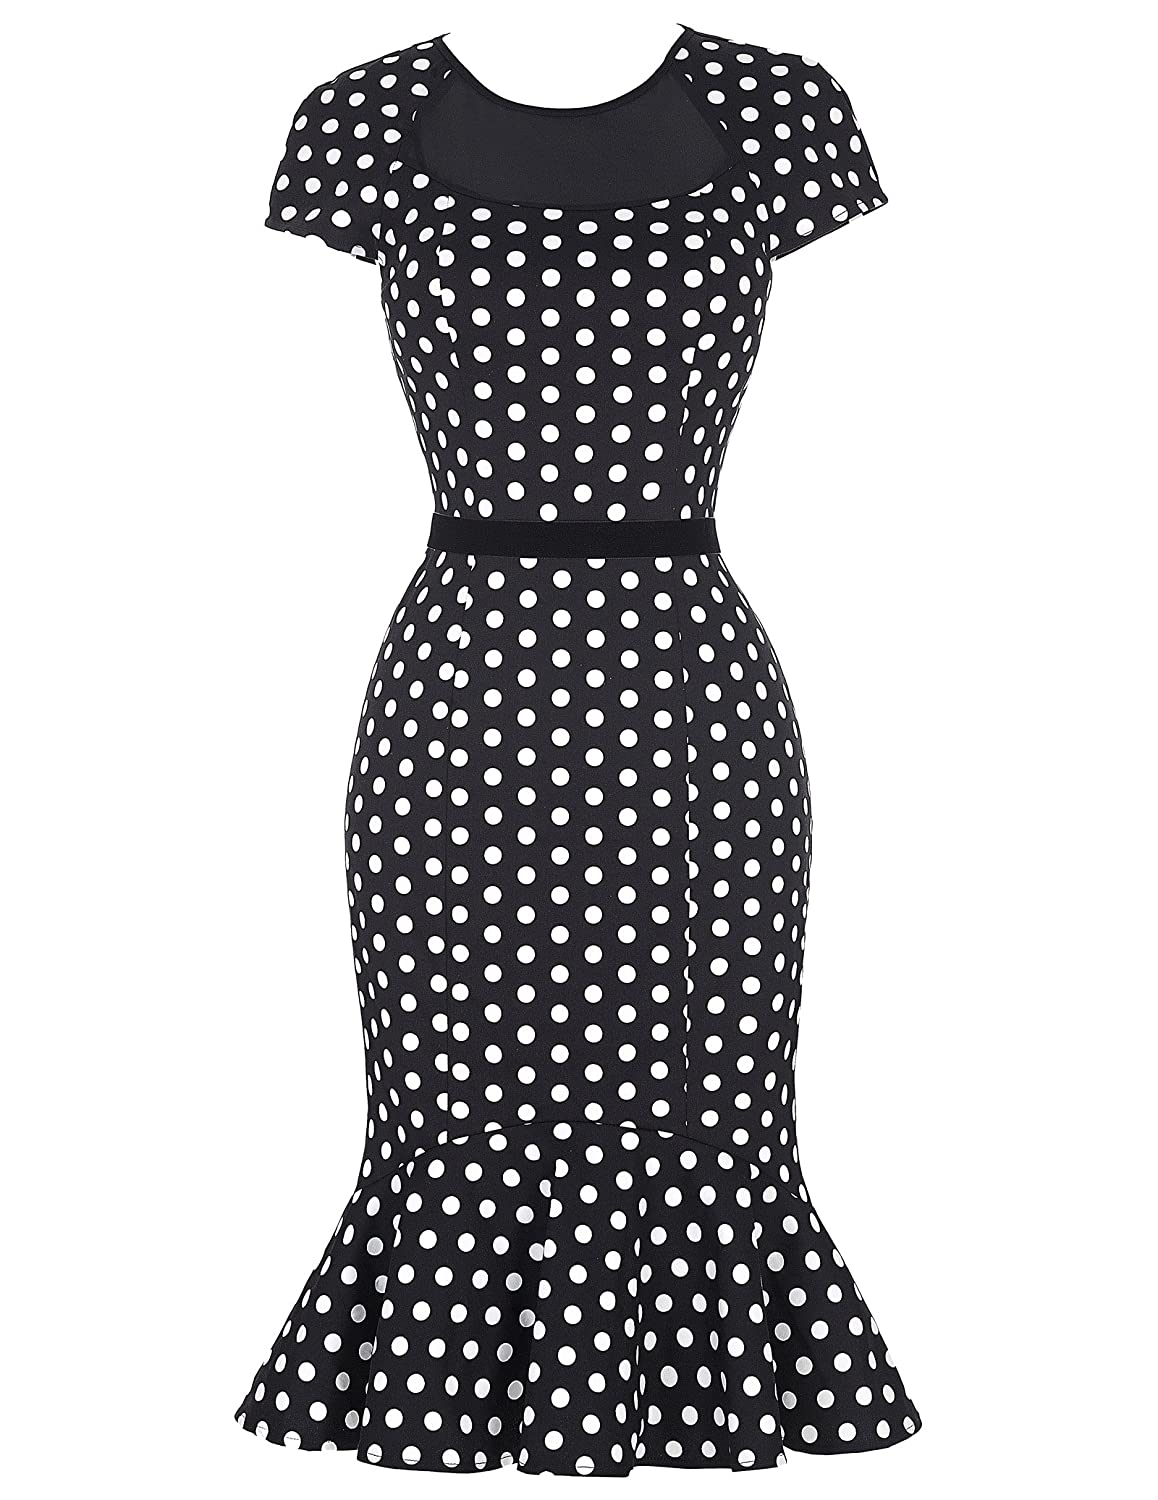 Vintage Polka Dot Dresses – Ditsy 50s Prints Belle Poque Womens Floral Slim Fishtail Bodycon Dresses $16.99 AT vintagedancer.com